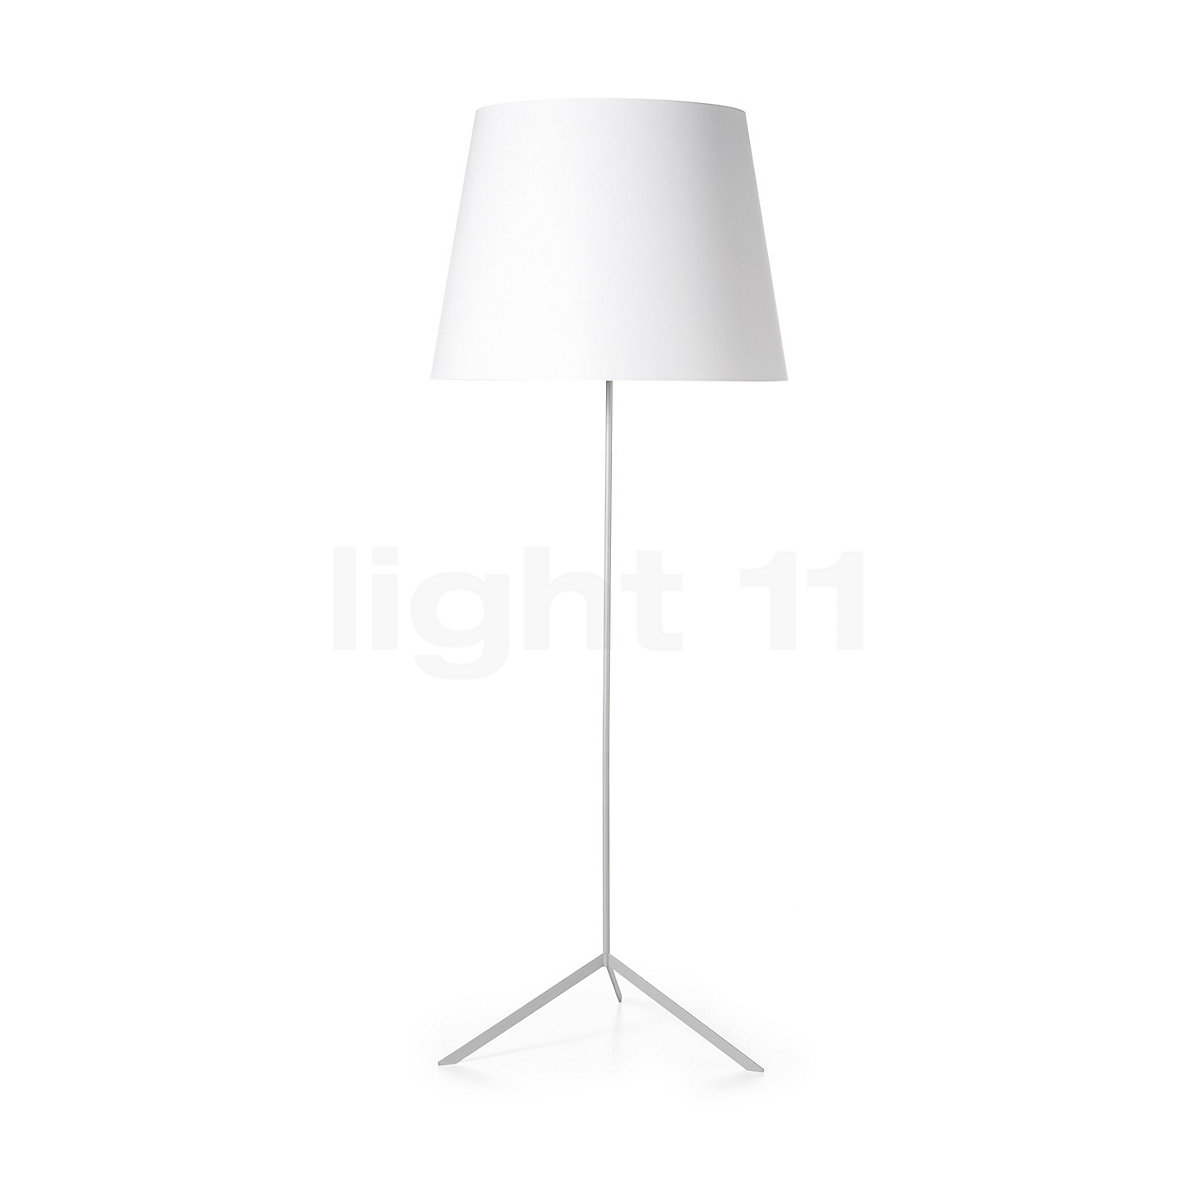 Picture of: Buy Moooi Double Shade Floor Lamp At Light11 Eu